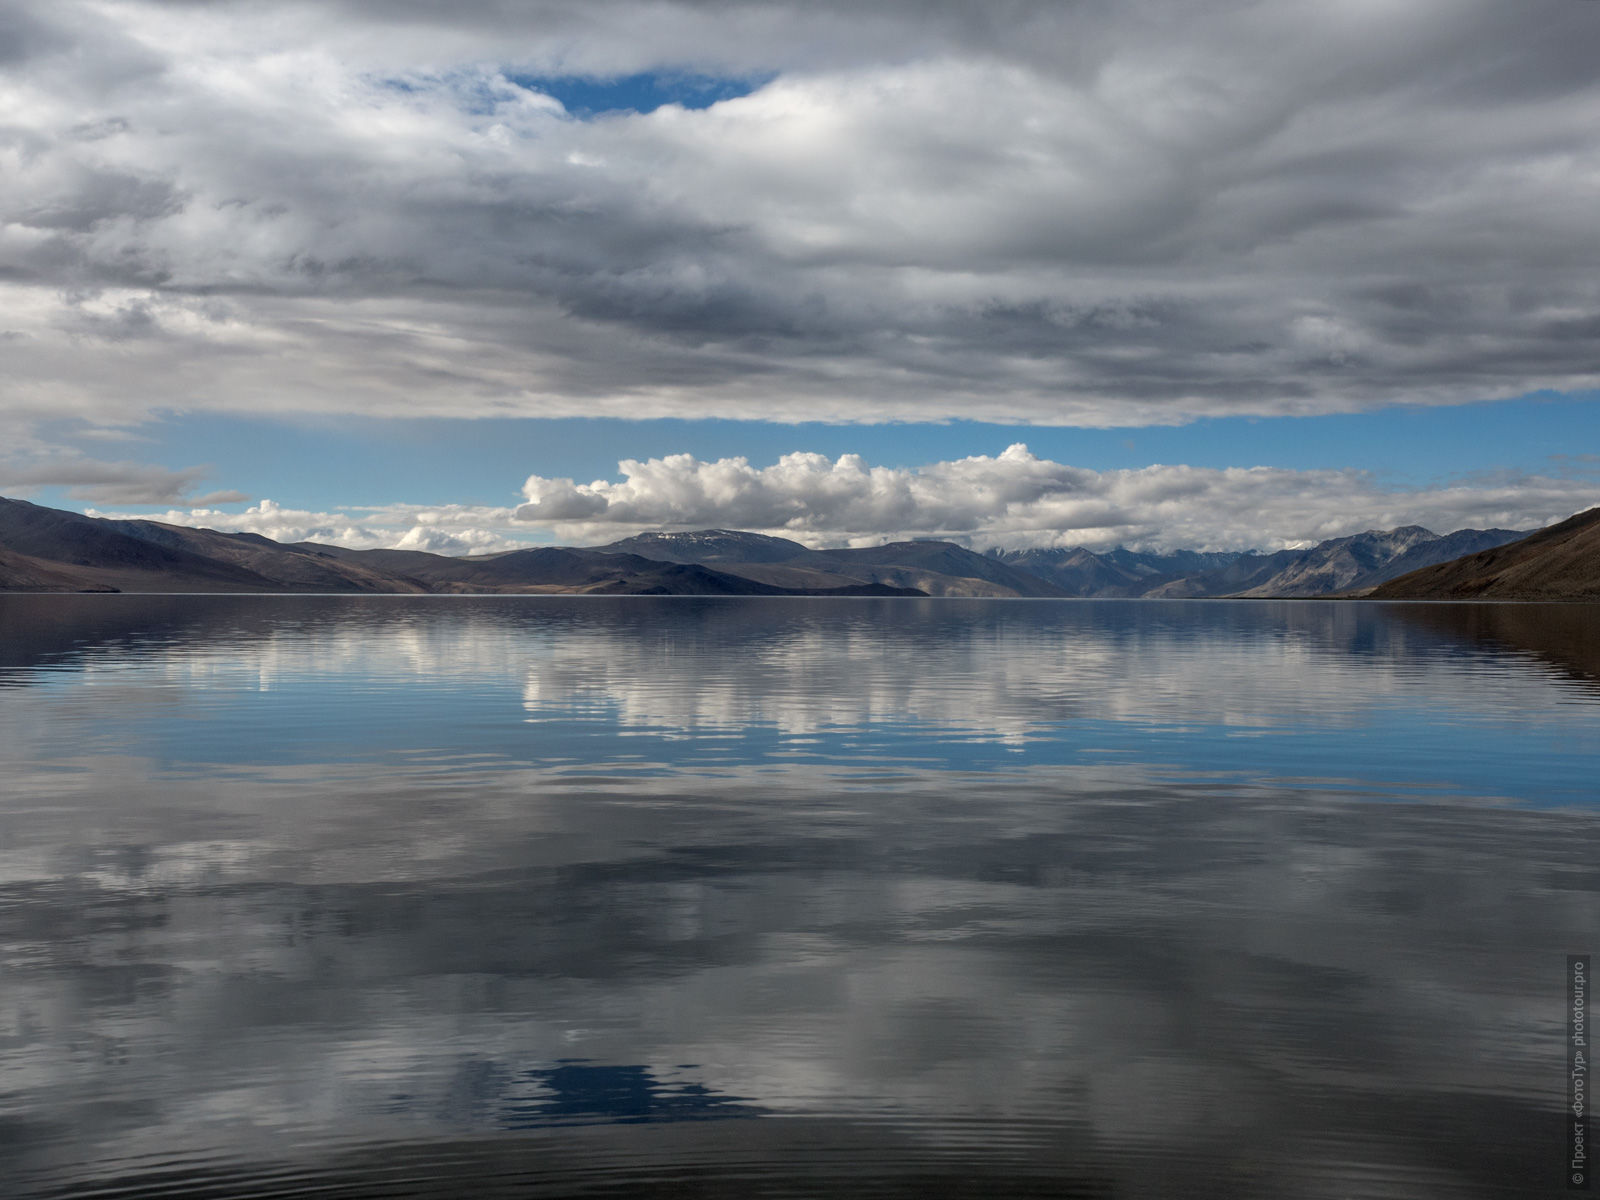 Lake Tso Moriri, Ladakh. Photo tour / tour Tibet of Lake-1: Pangong, Tso Moriri, Tso Kar, Tso Chiagar, Dance of Tsam on Lake Pangong, 19.06. - 28.06.2021.